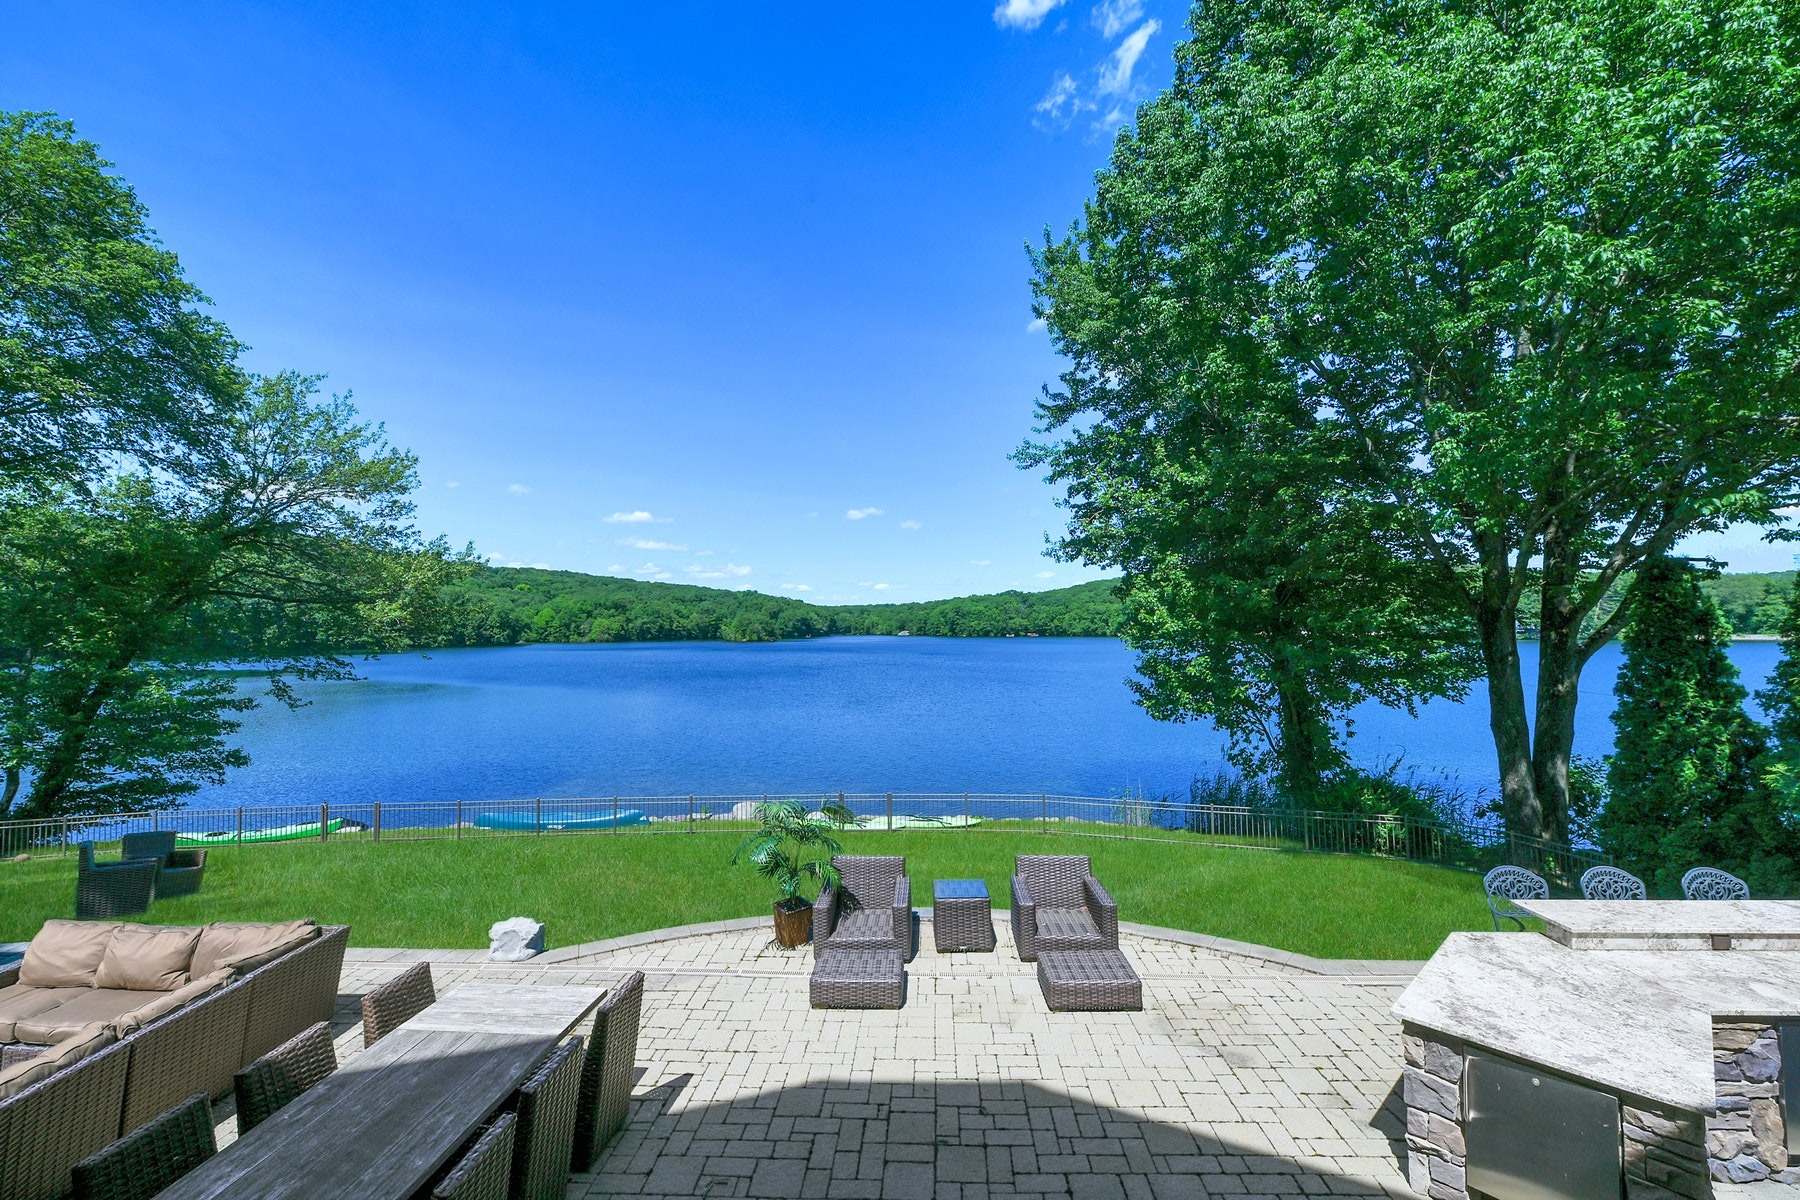 Single Family Homes for Sale at Custom Built Home Overlooking West Lake 4 Stonybrook Trail, Kinnelon, New Jersey 07405 United States